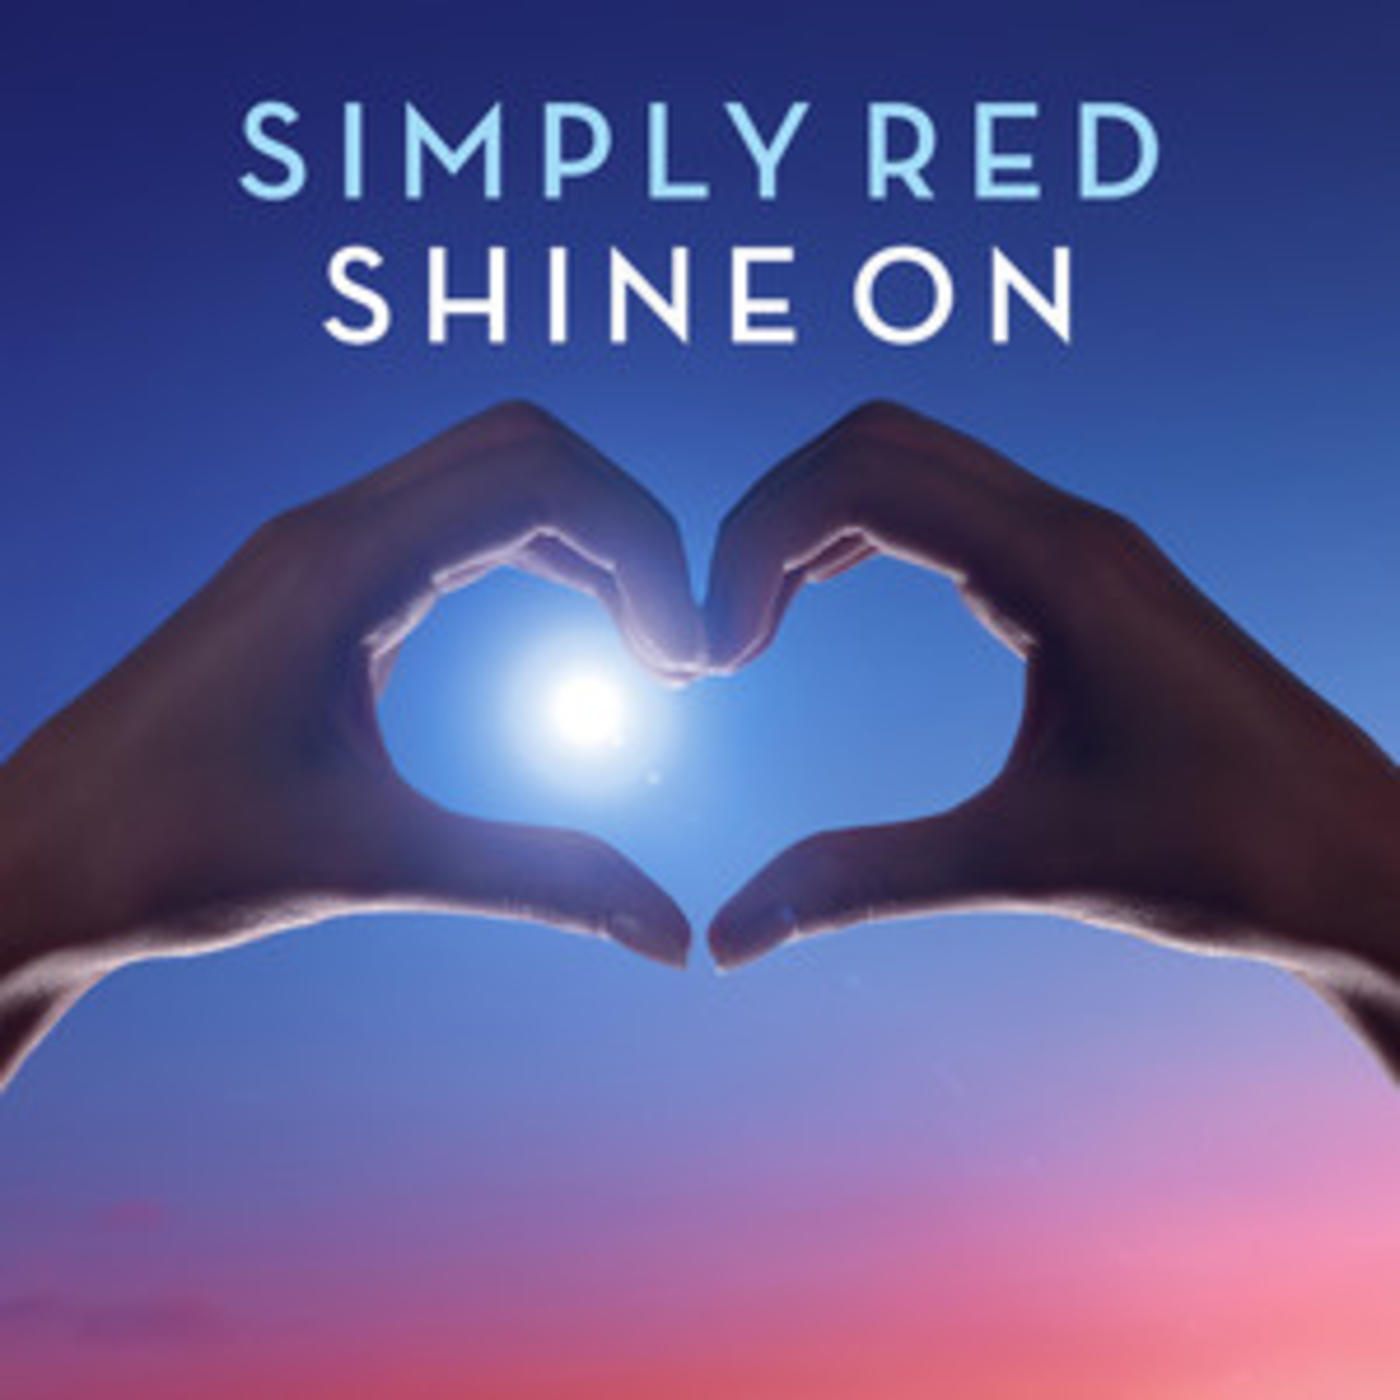 THE DEFINITIVE SIMPLY RED FANCLUB PLAYLIST